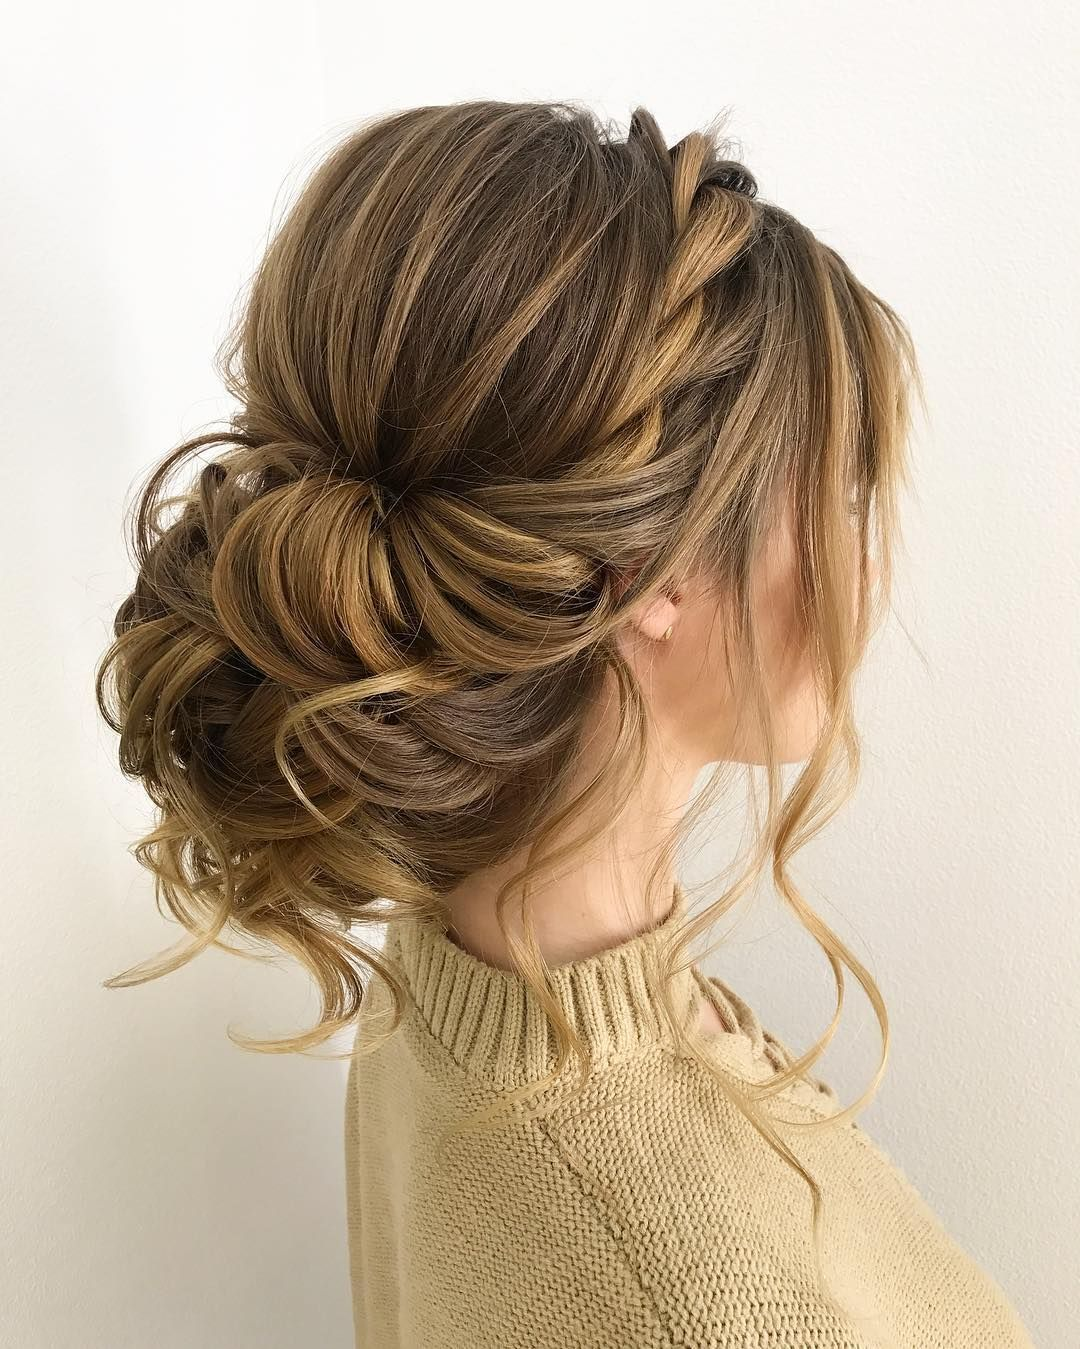 Wedding Hairstyle: Gorgeous Wedding Updo Hairstyles That Will Wow Your Big